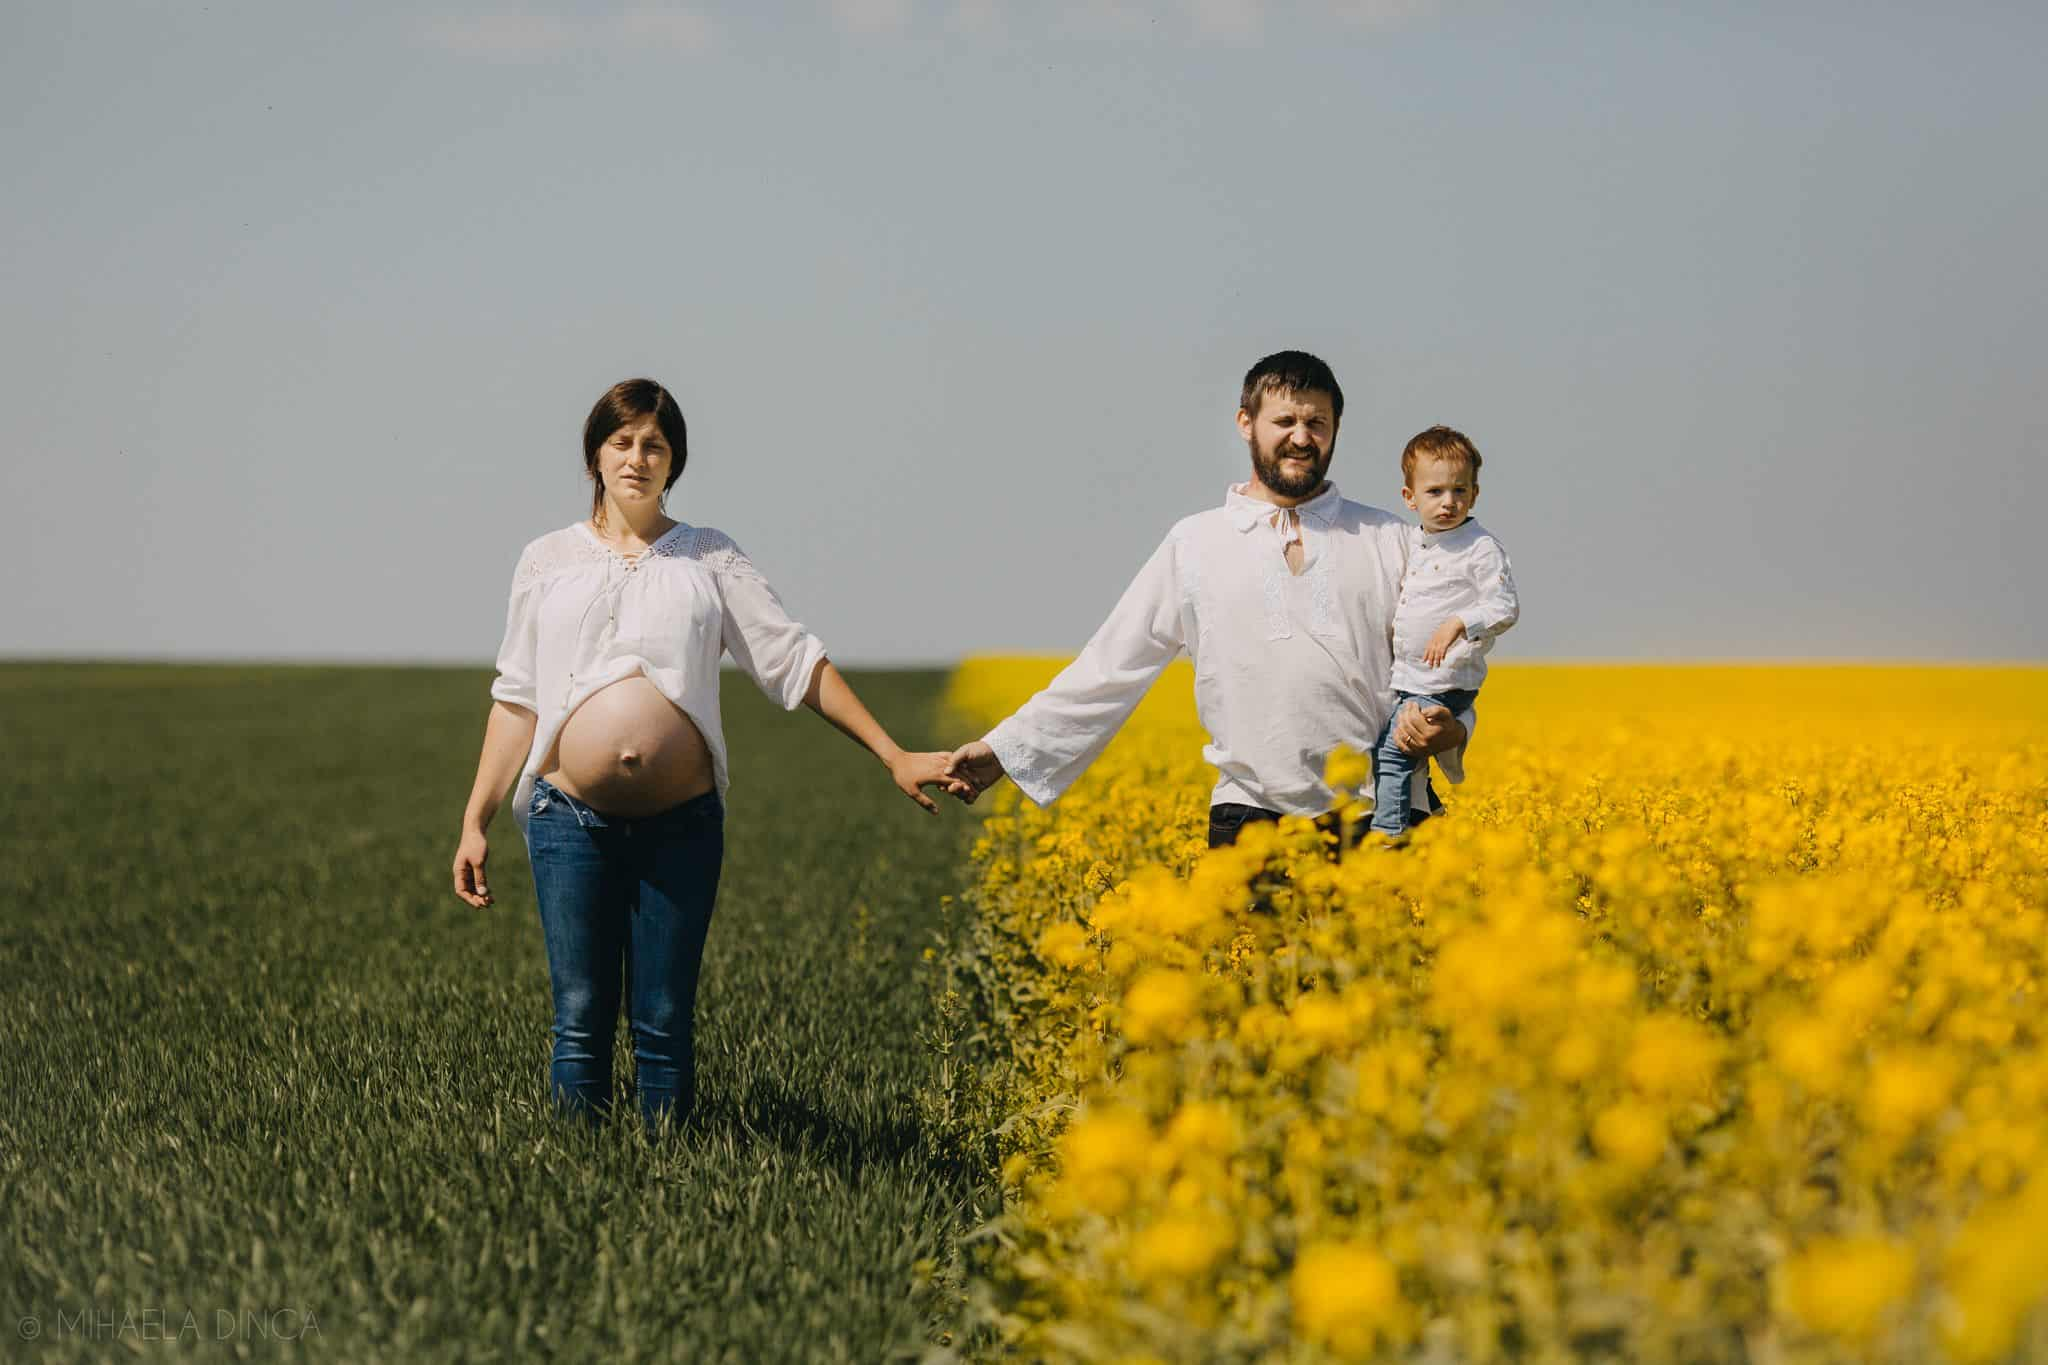 Family Photos in a field